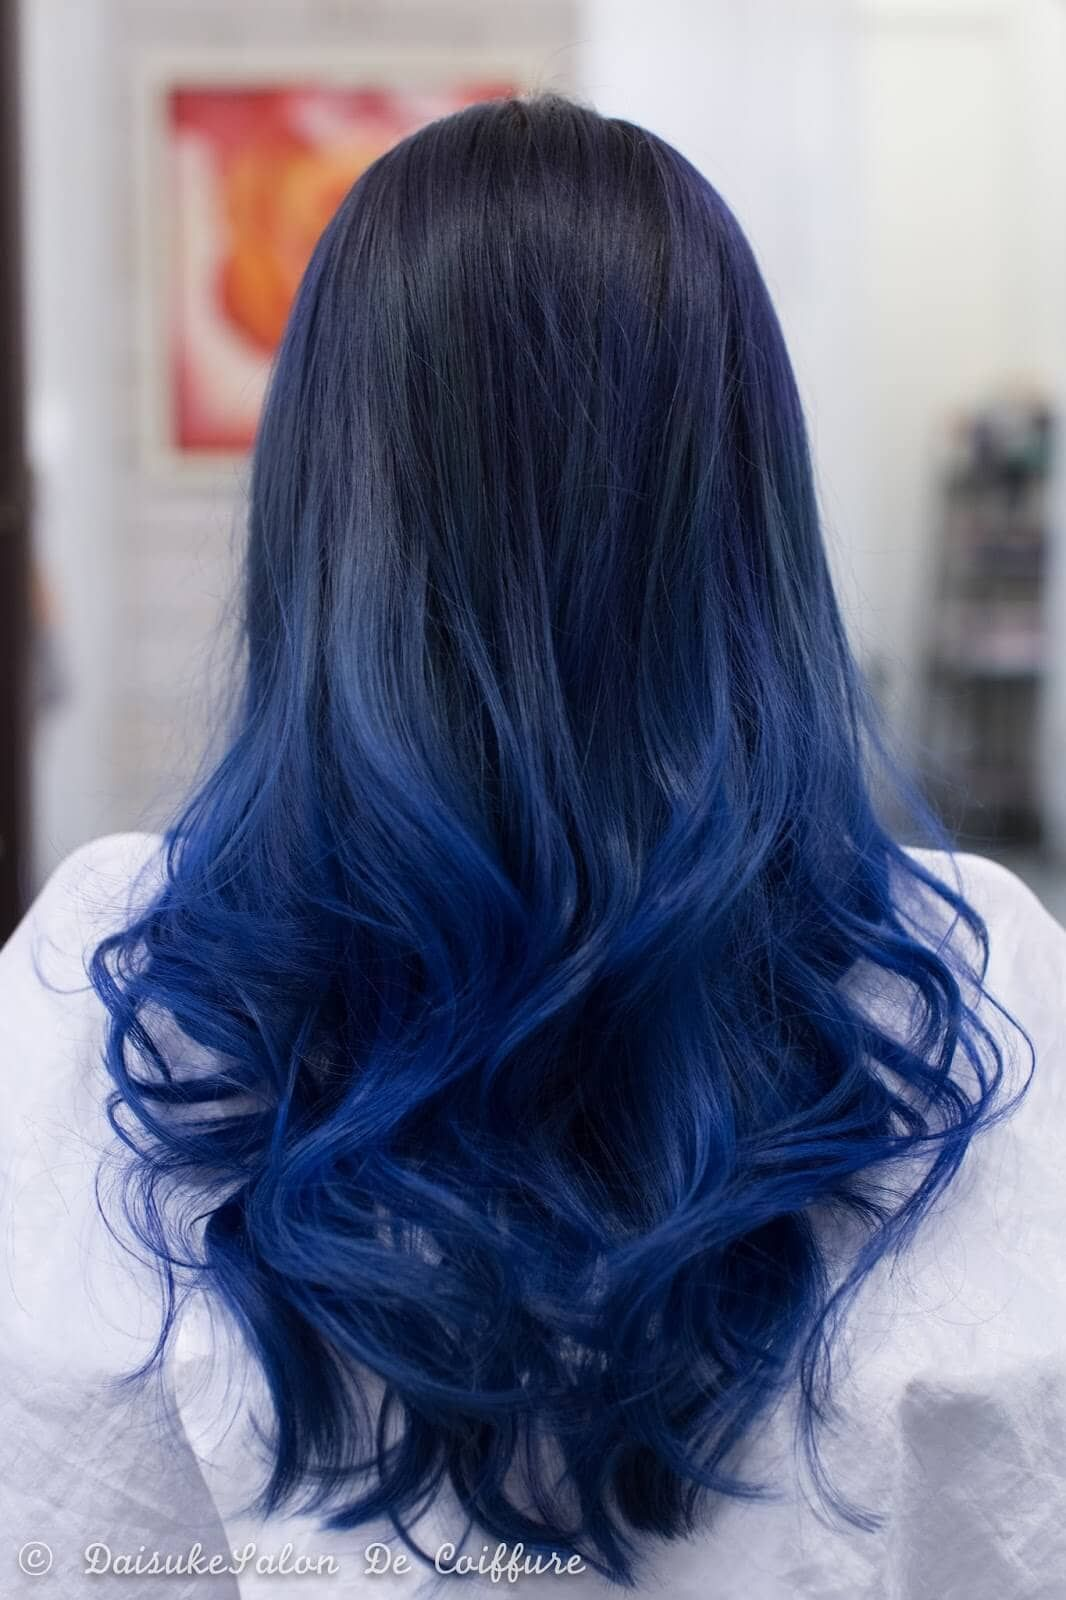 33+ Cool Blue Hair Ideas That Youl Want To Get #bluehair #haircolor #womenhairstyles